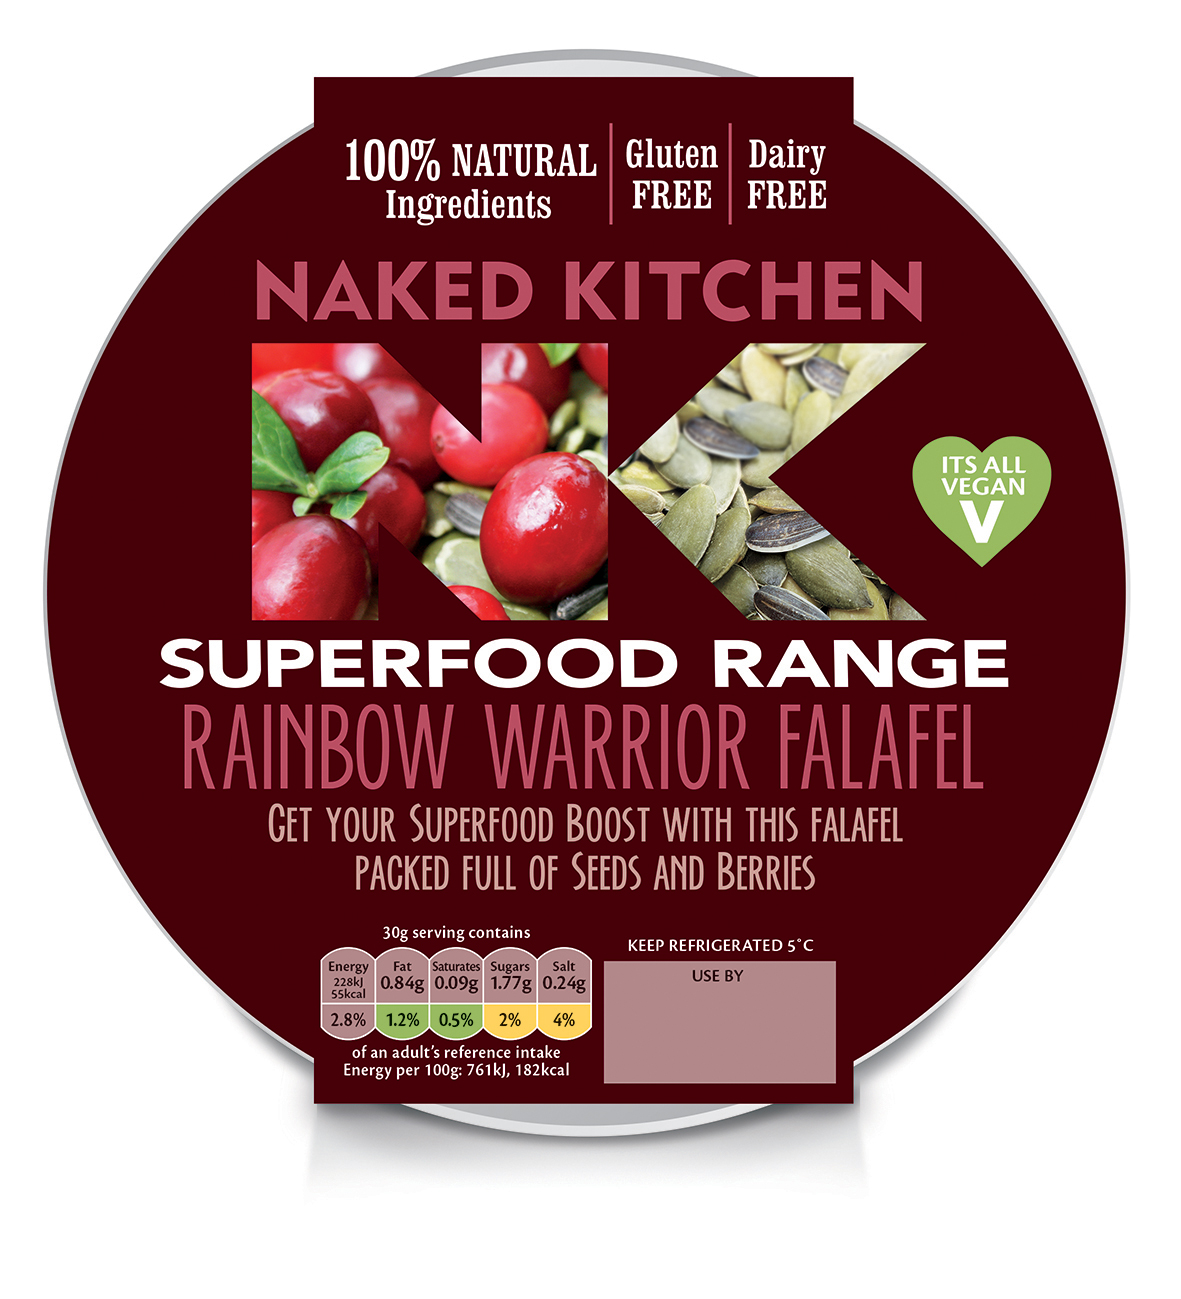 Superfood: Rainbow Warrior Falafel